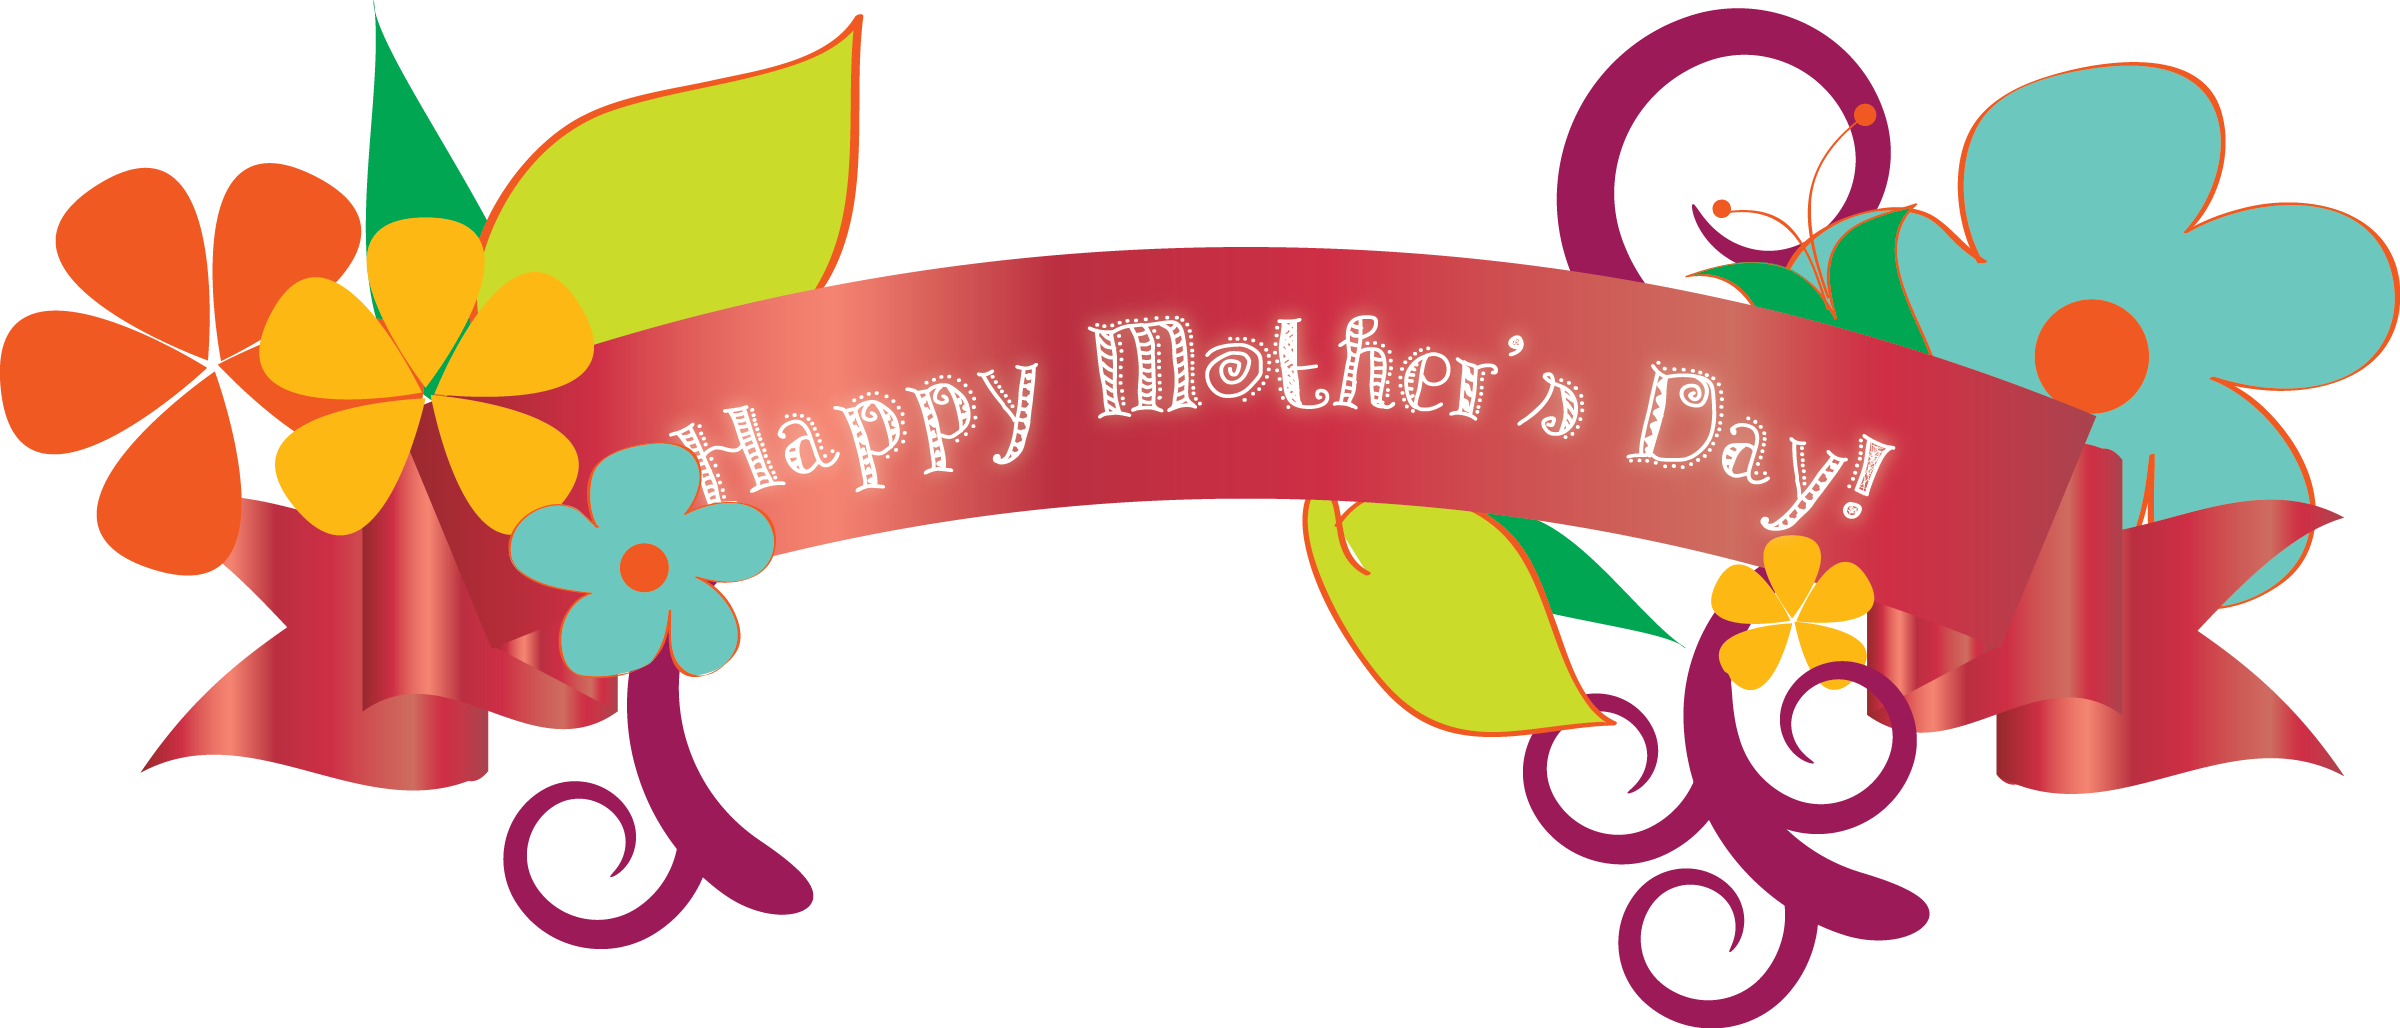 Mothers day png pictures. Raffle clipart transparent background